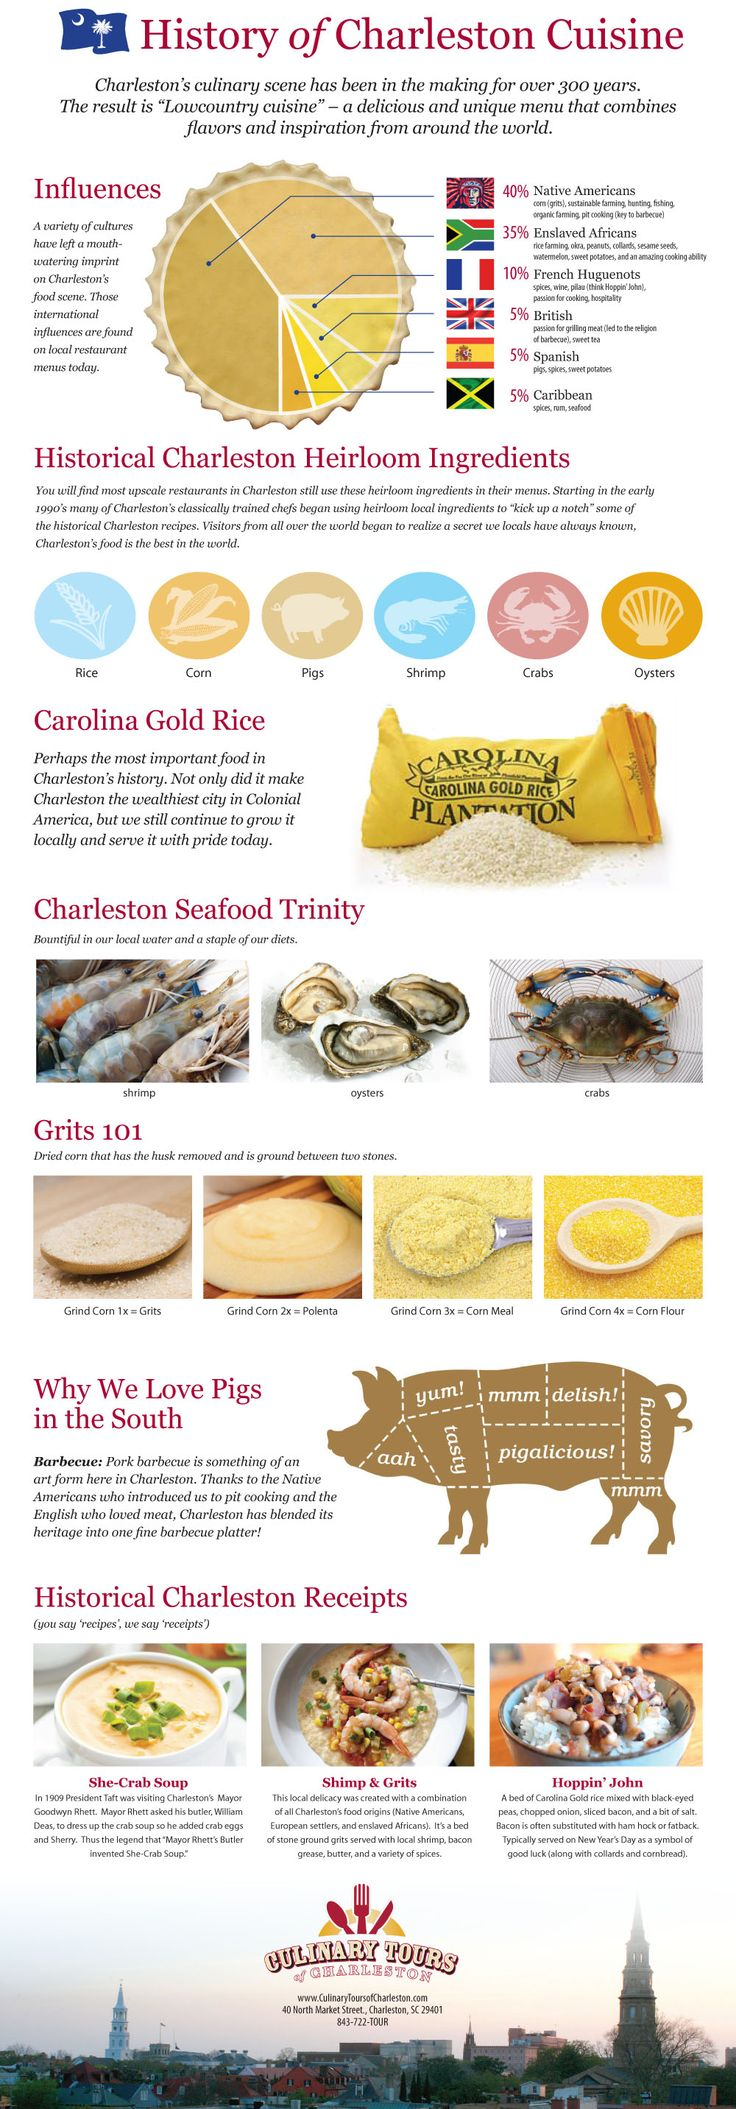 history of charleston south carolina cuisine by culinary tours of charleston #infographic